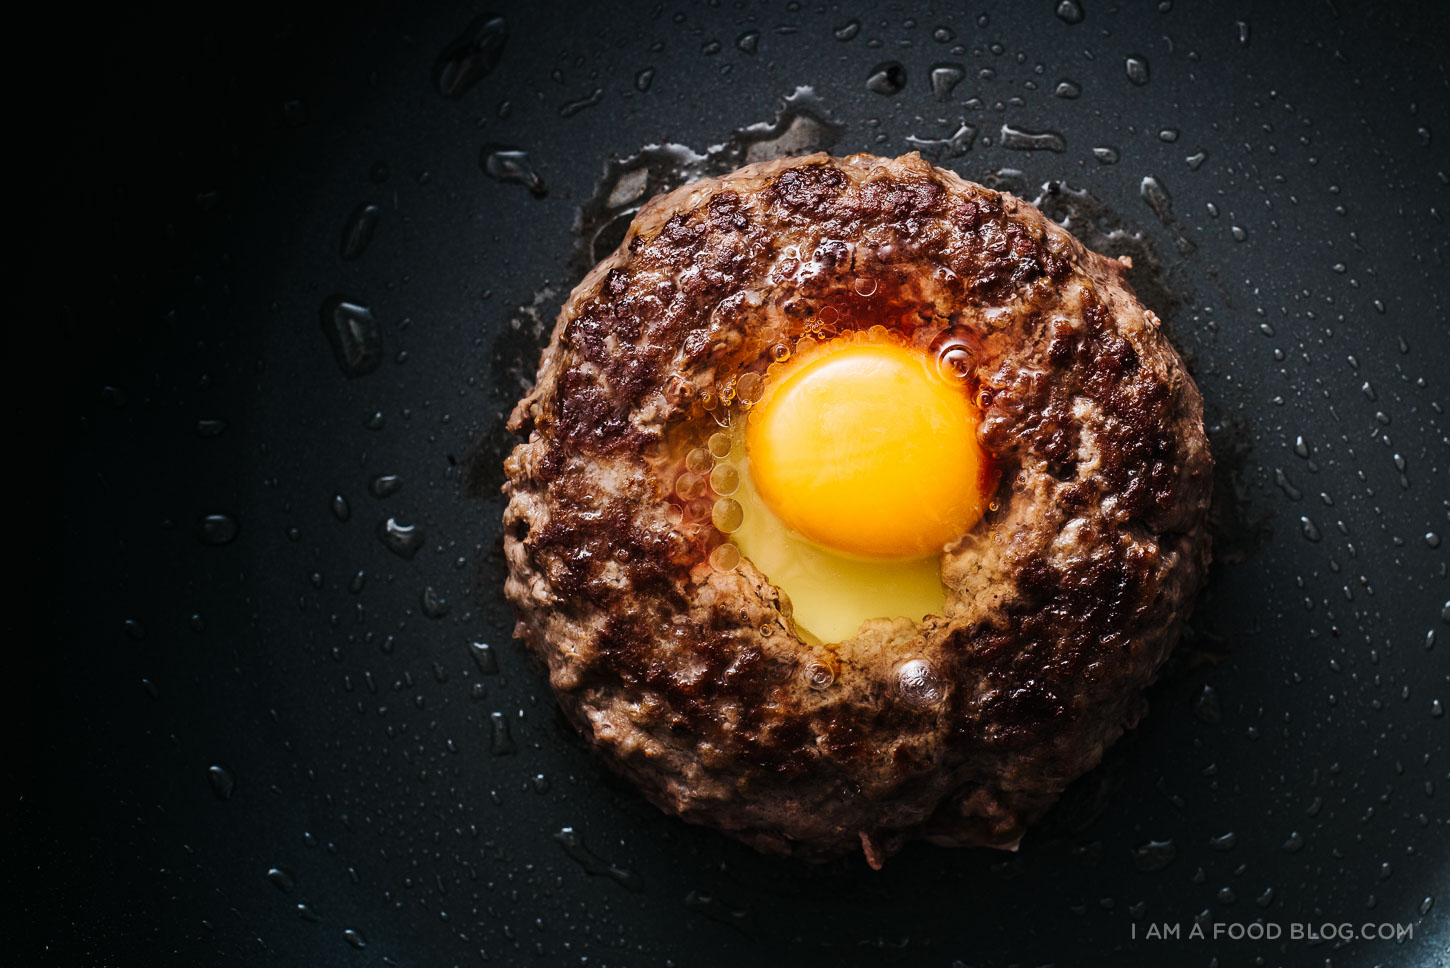 egg in a hole burger recipe - www.iamafoodblog.com